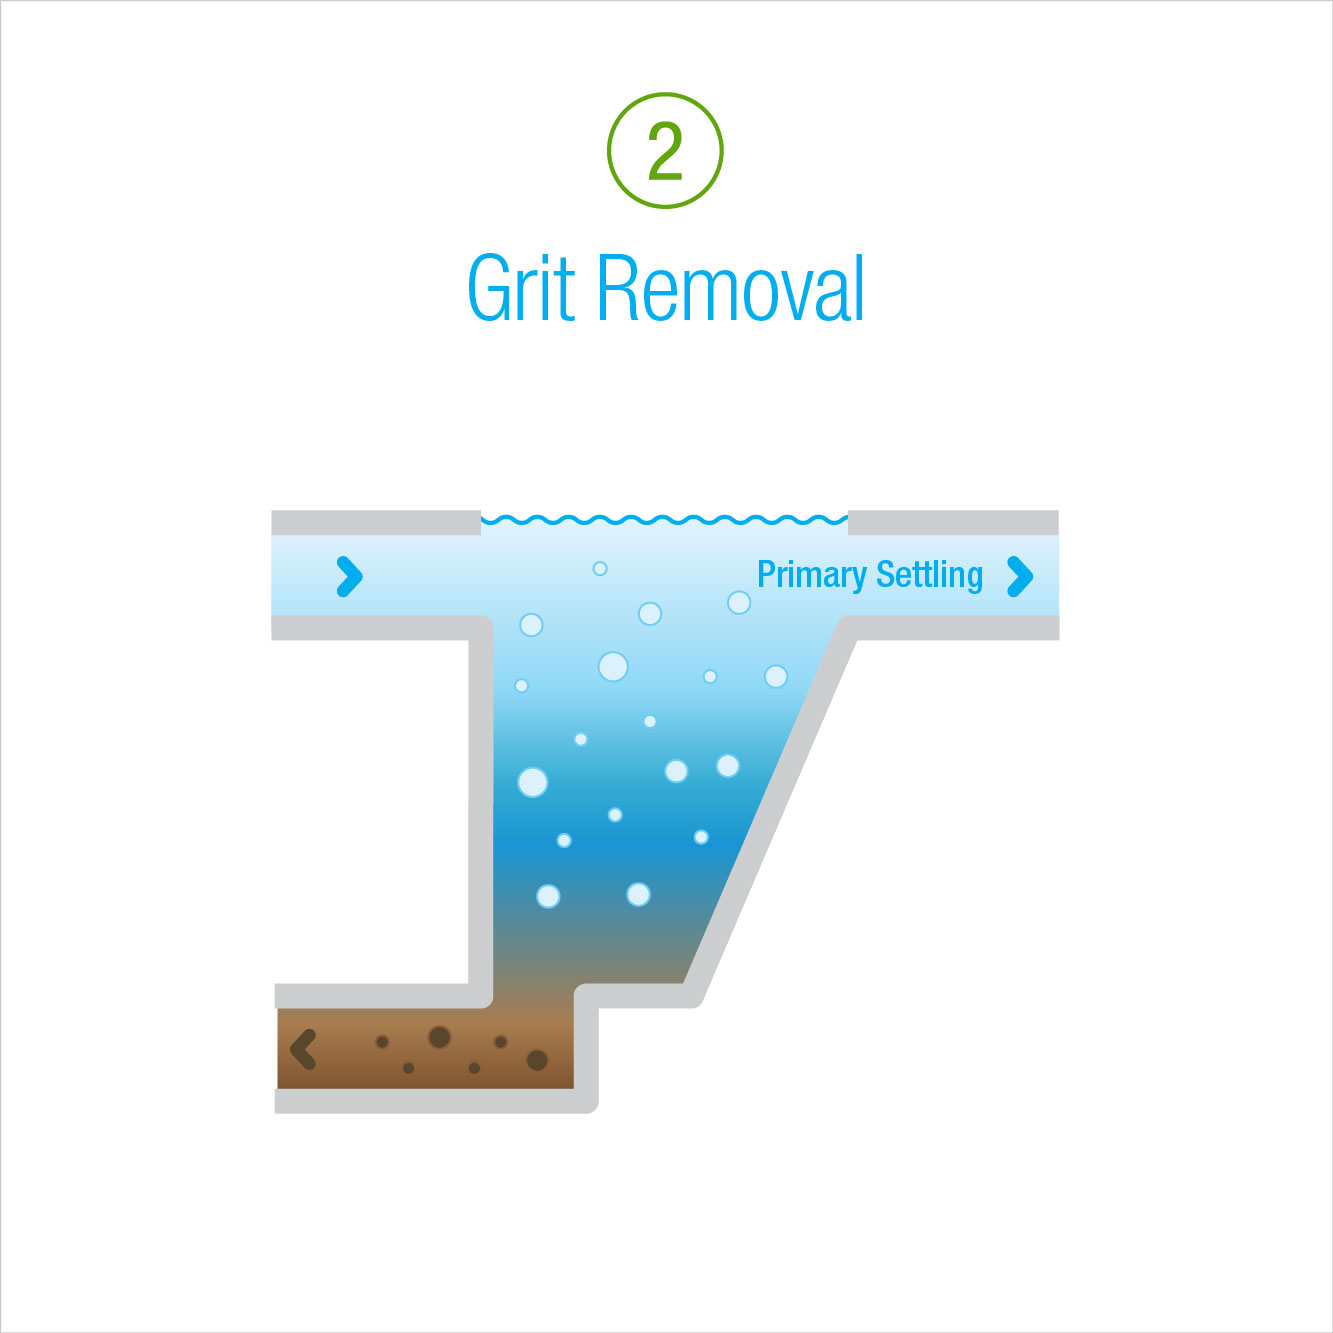 2: Grit Removal